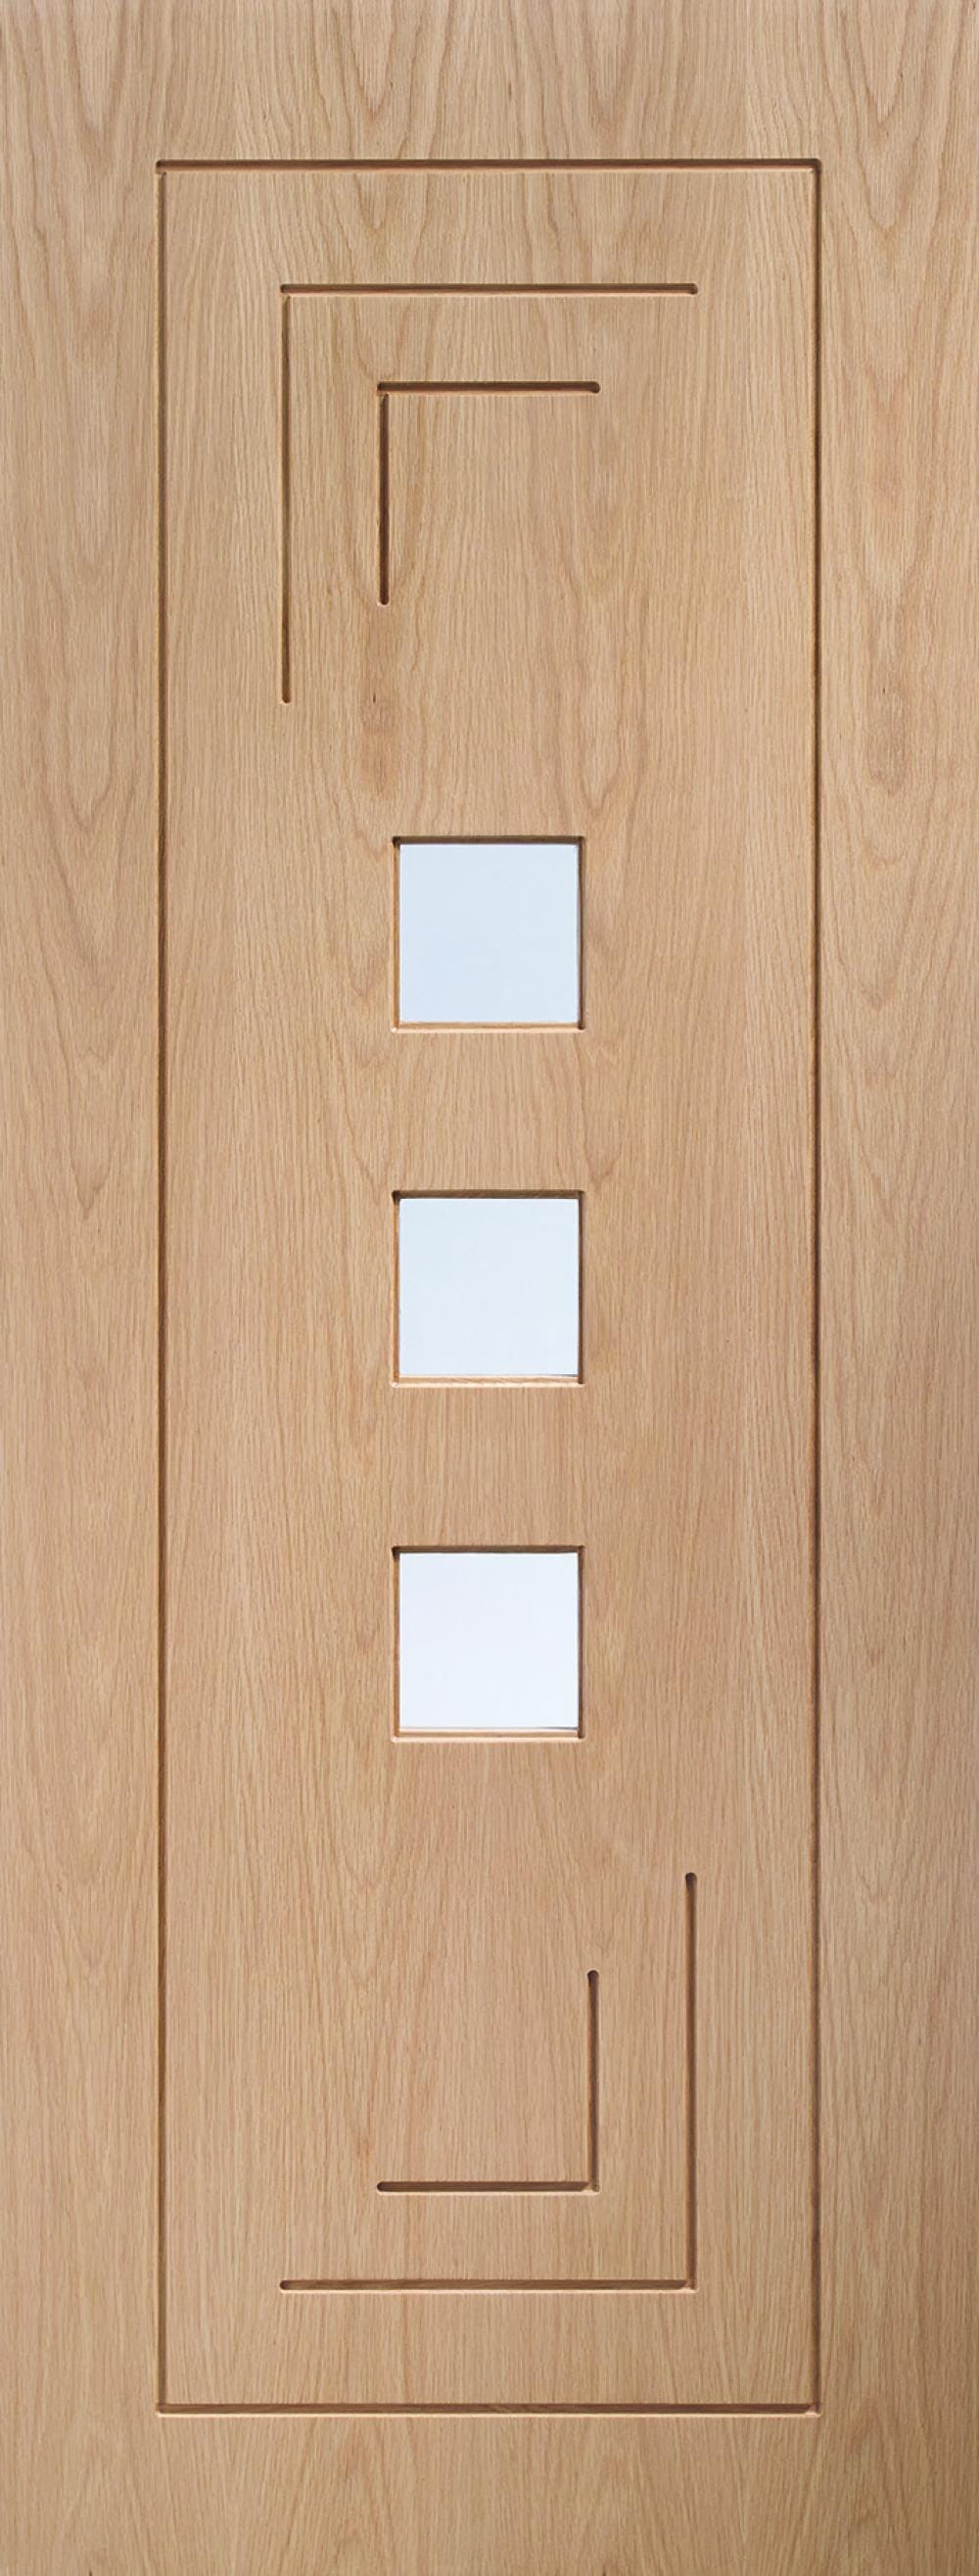 Altino Oak - Prefinished Clear Glass Image